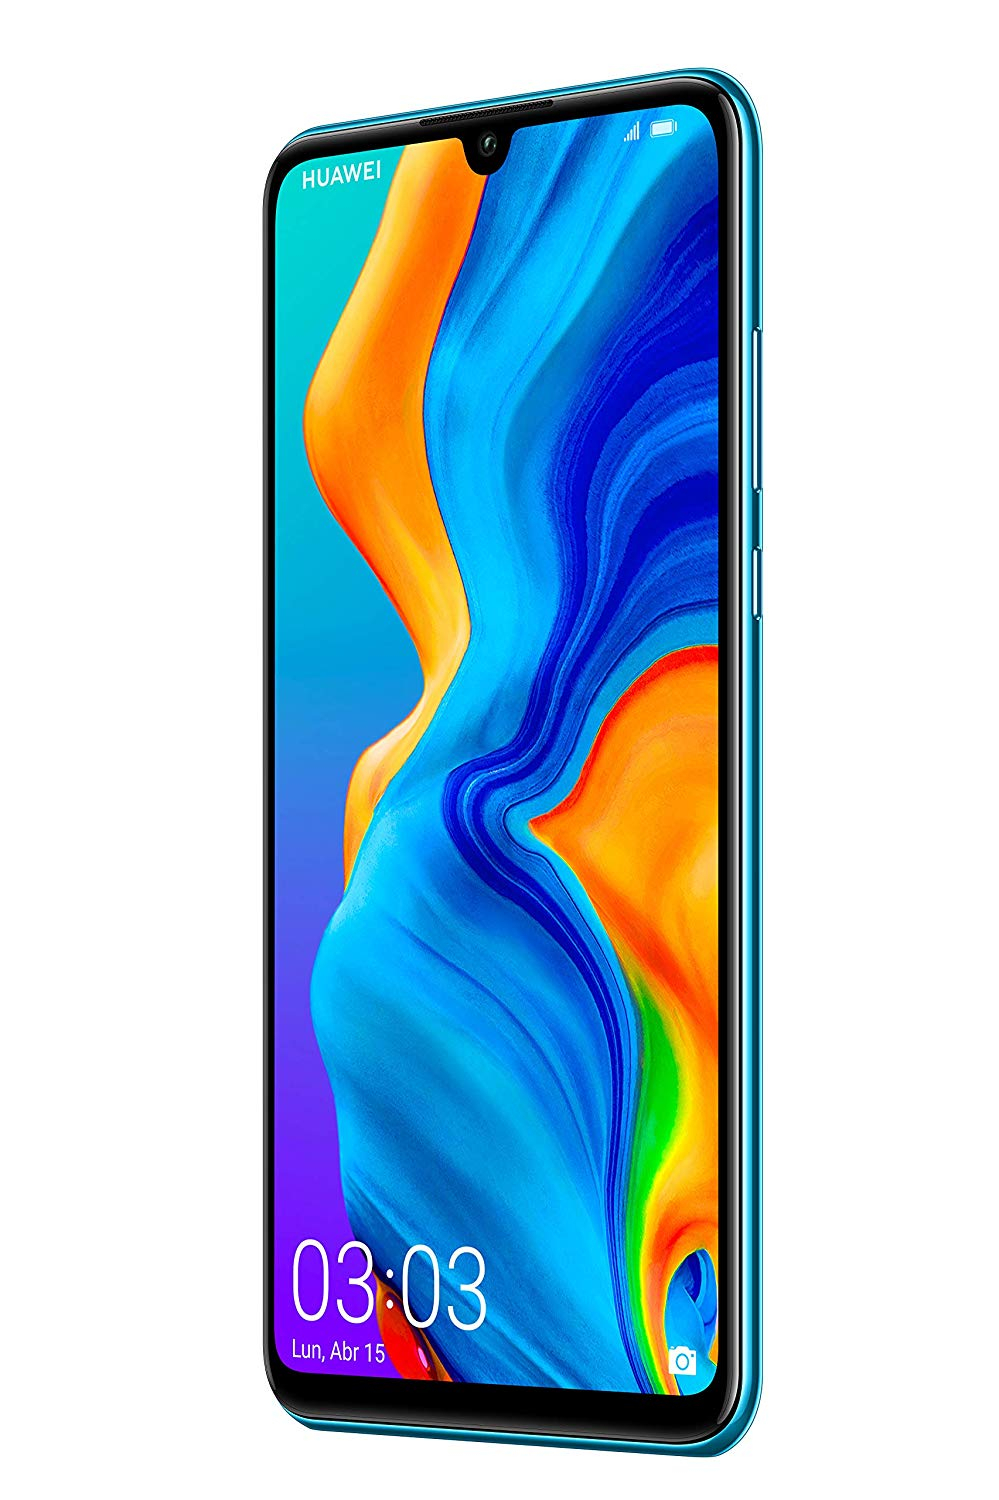 Huawei P30 Lite, Color Blue (Blue), Dual SIM, Internal 128 GB De Memoria, 4GB Ram, Screen 6.15